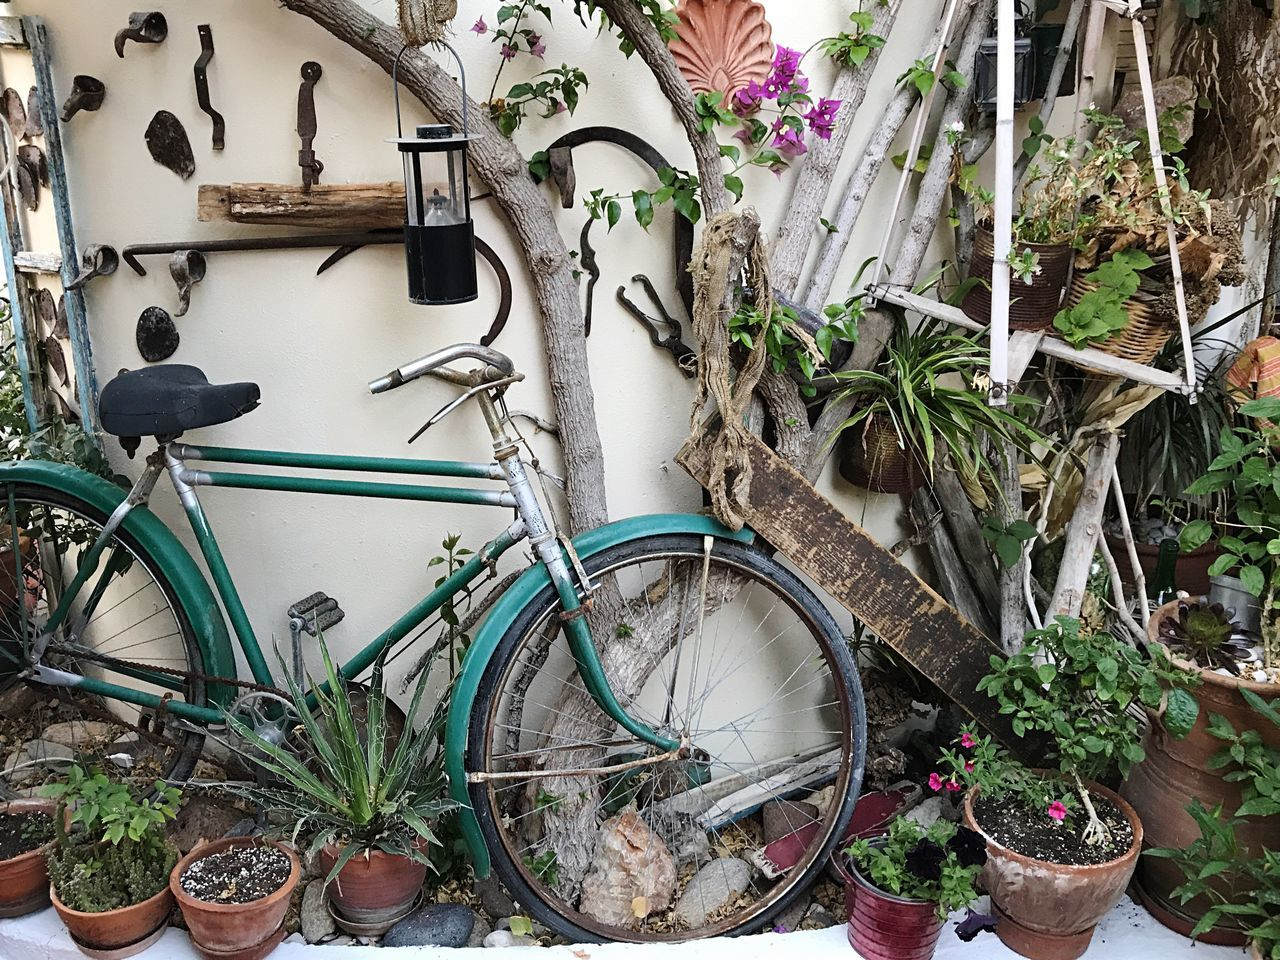 bicycle, plant, potted plant, land vehicle, mode of transport, transportation, growth, no people, day, stationary, outdoors, flower, nature